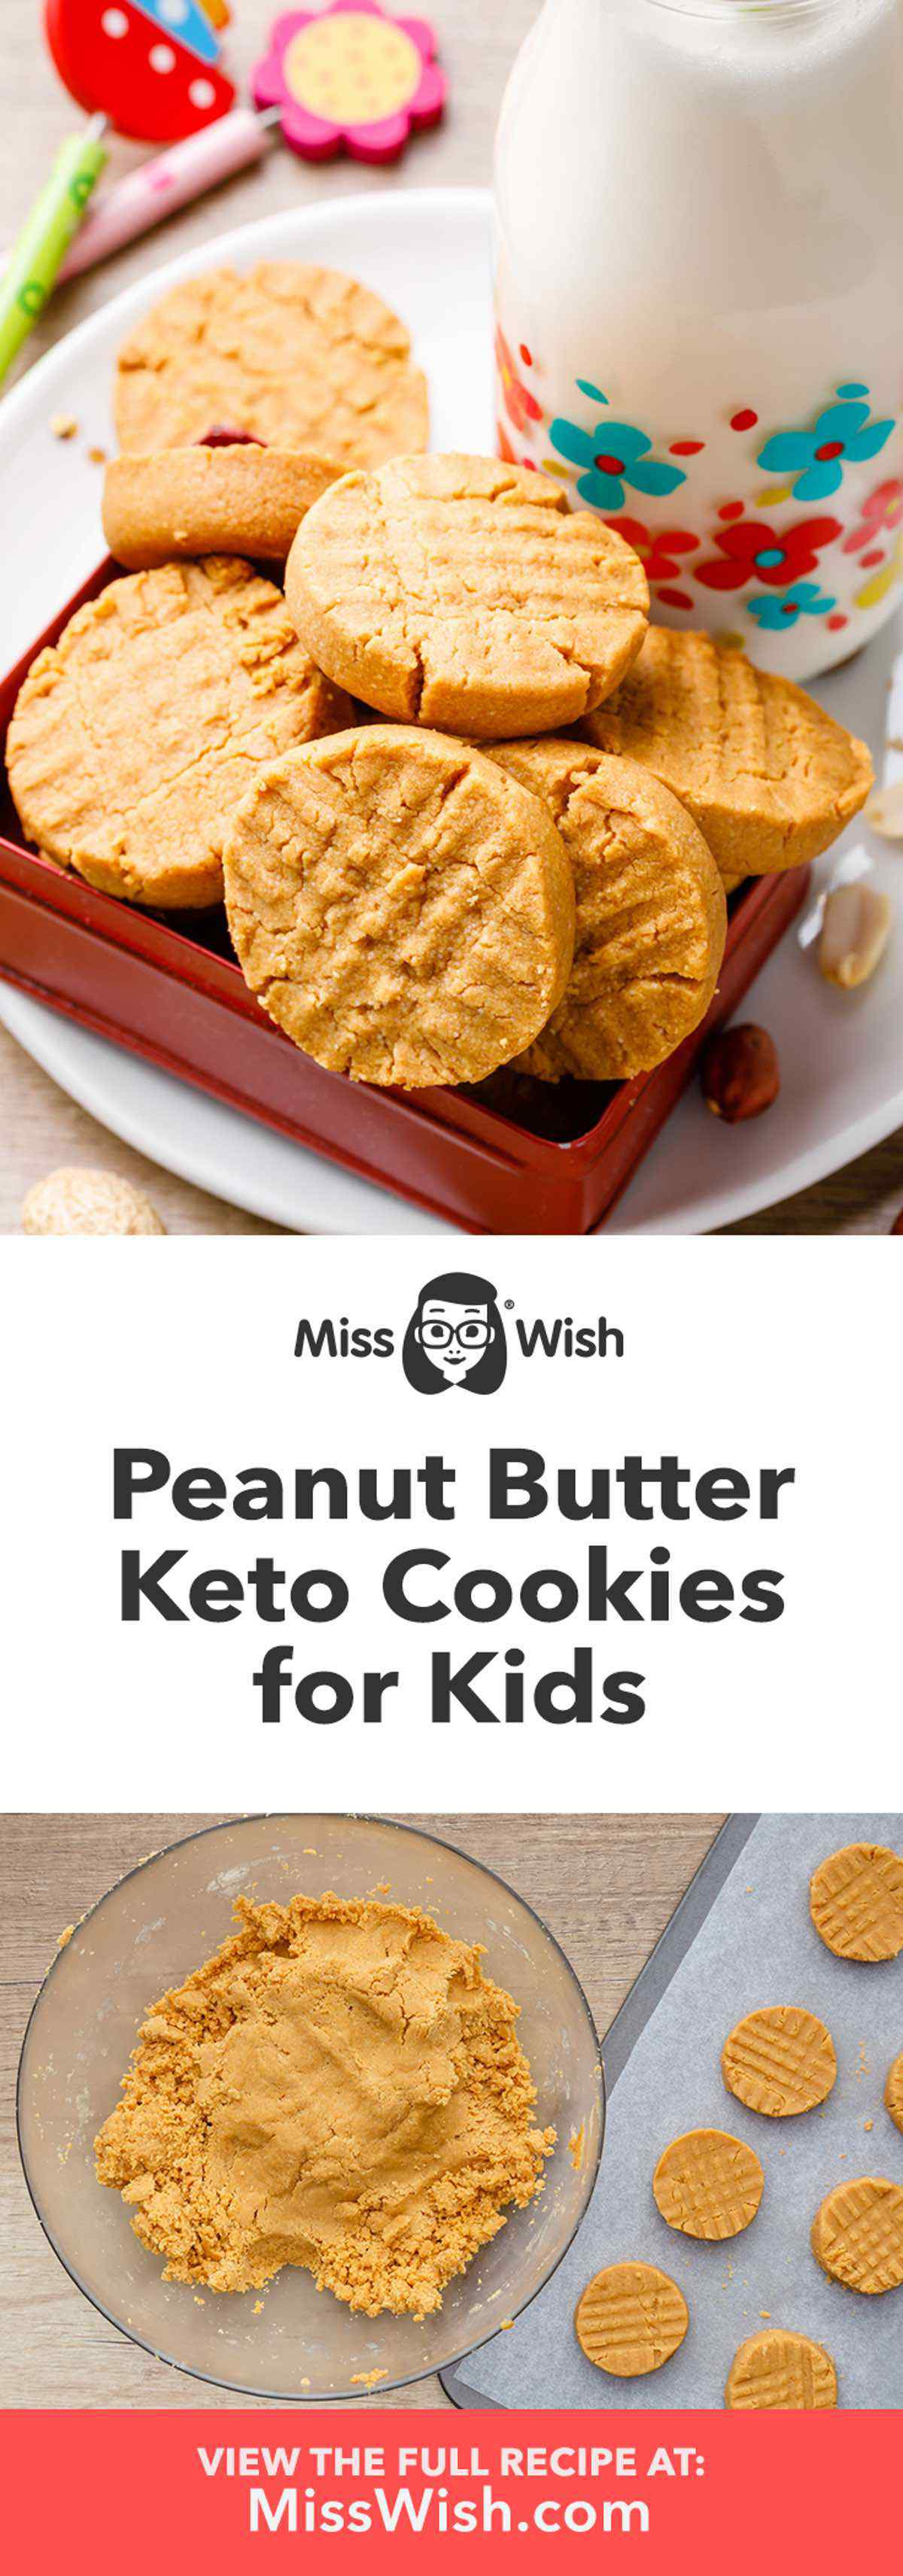 3-Ingredient Peanut Butter Keto Cookies